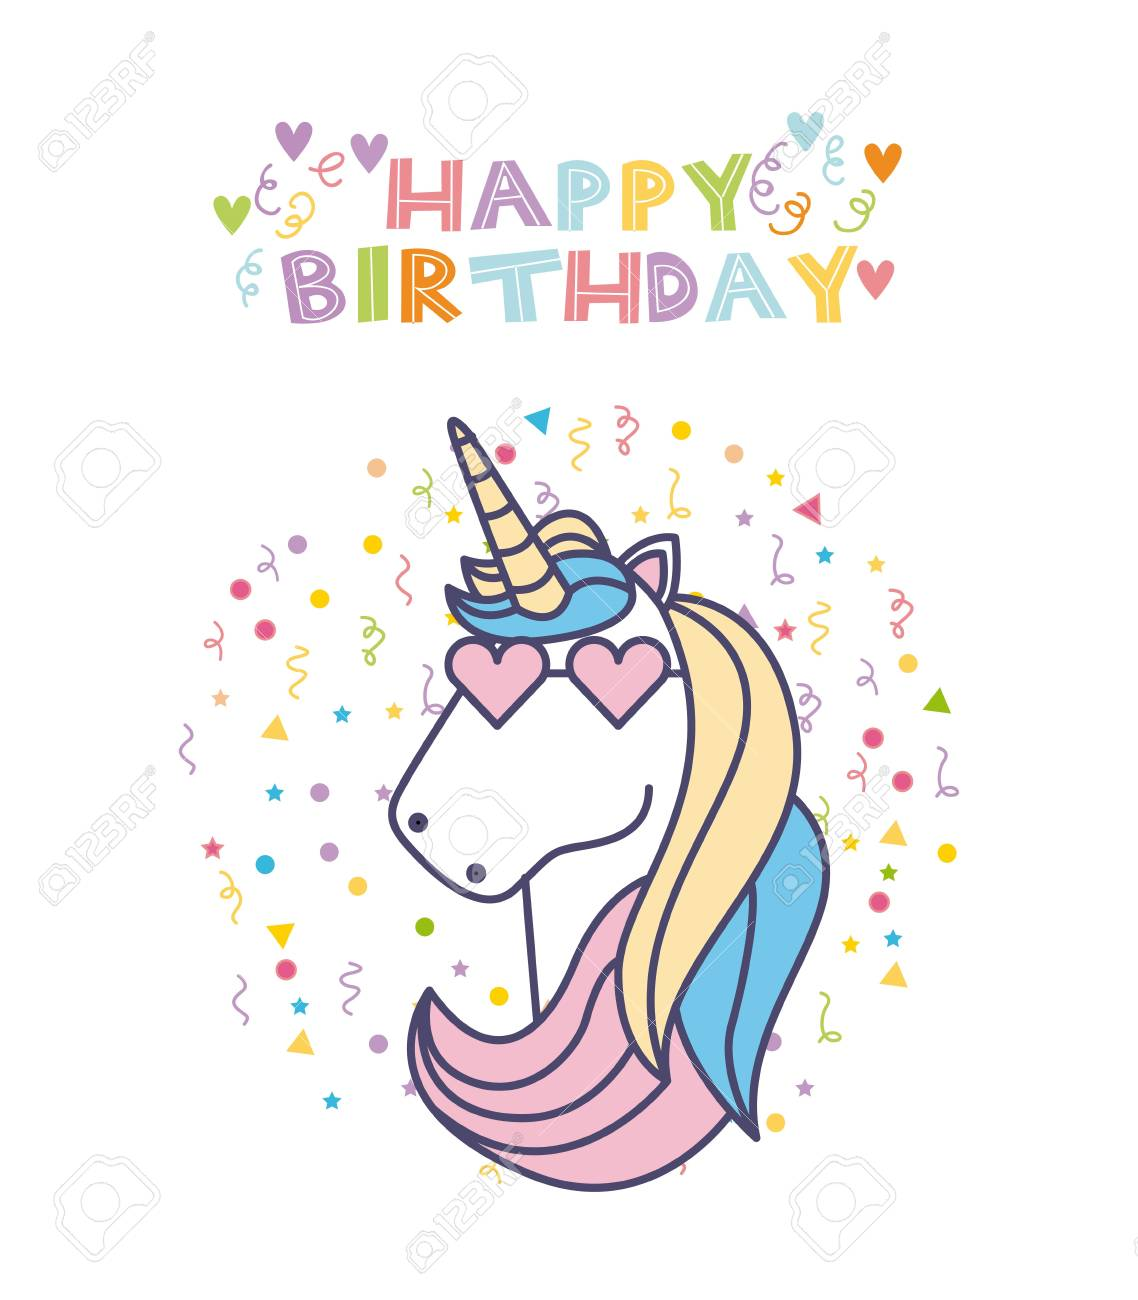 Happy Birthday Card With Cute Unicorn Icon Over White Background Colorful Design Vector Illustration